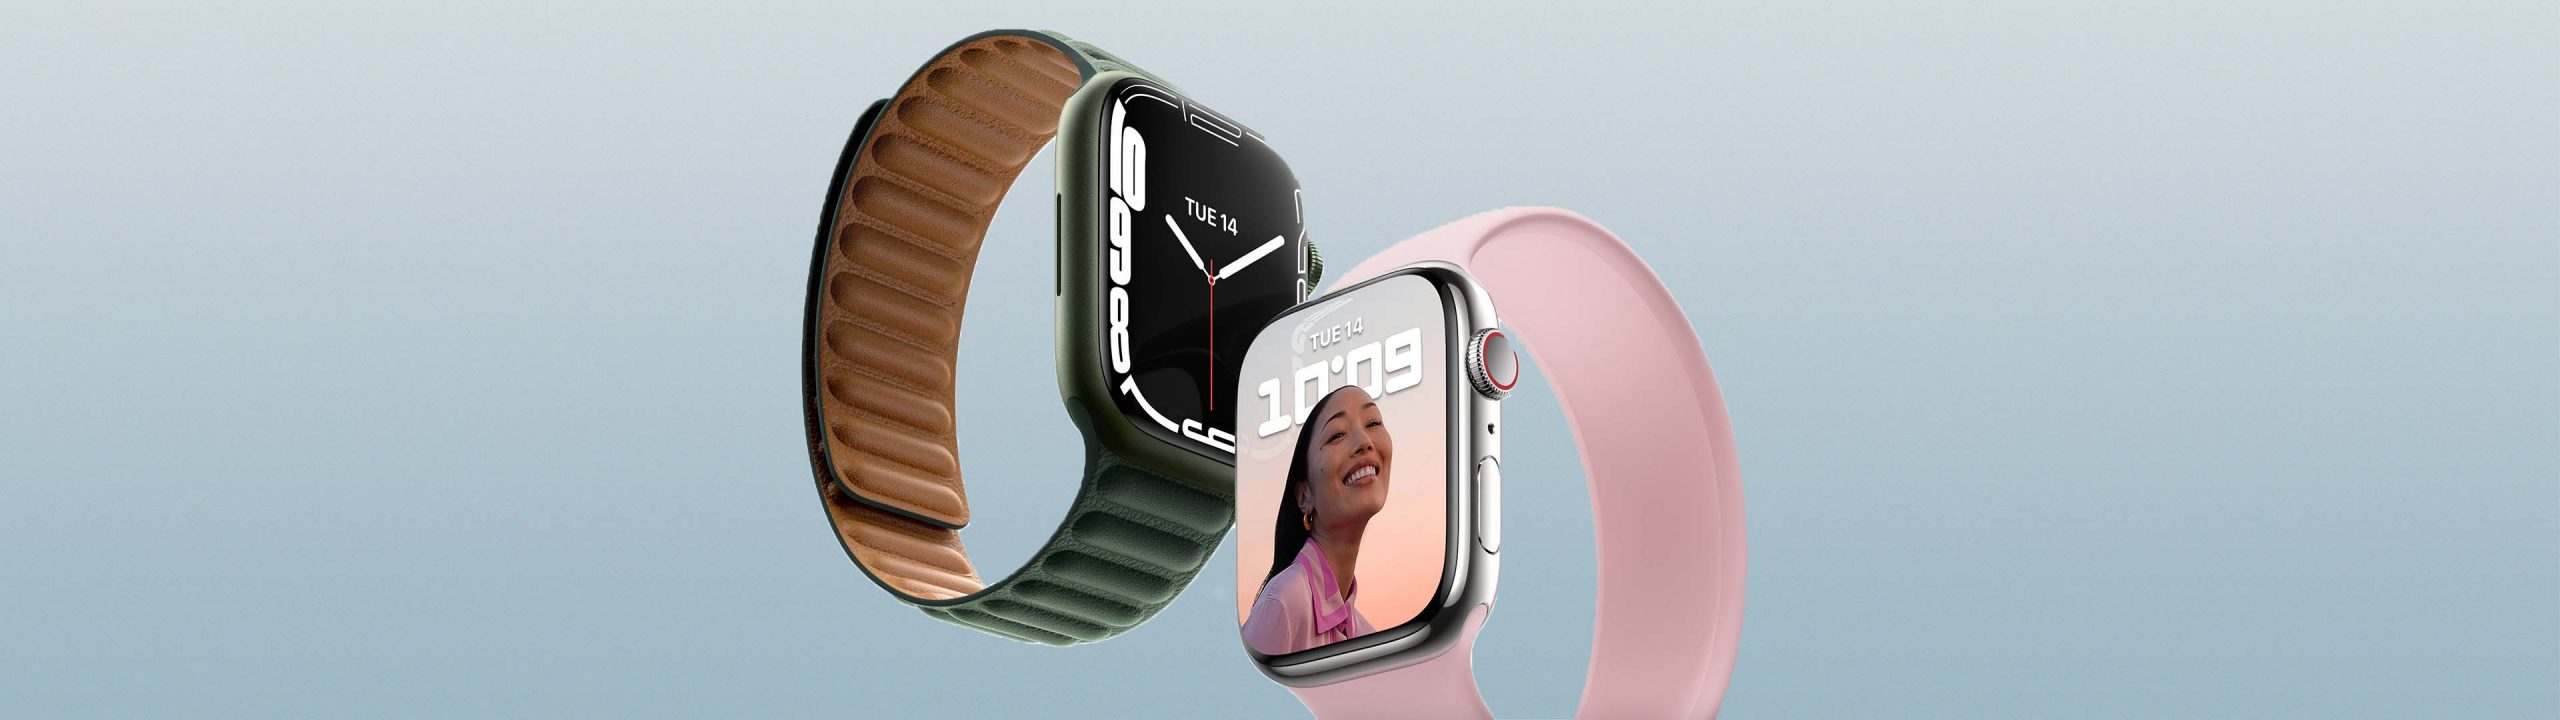 apple watches on blue background tips